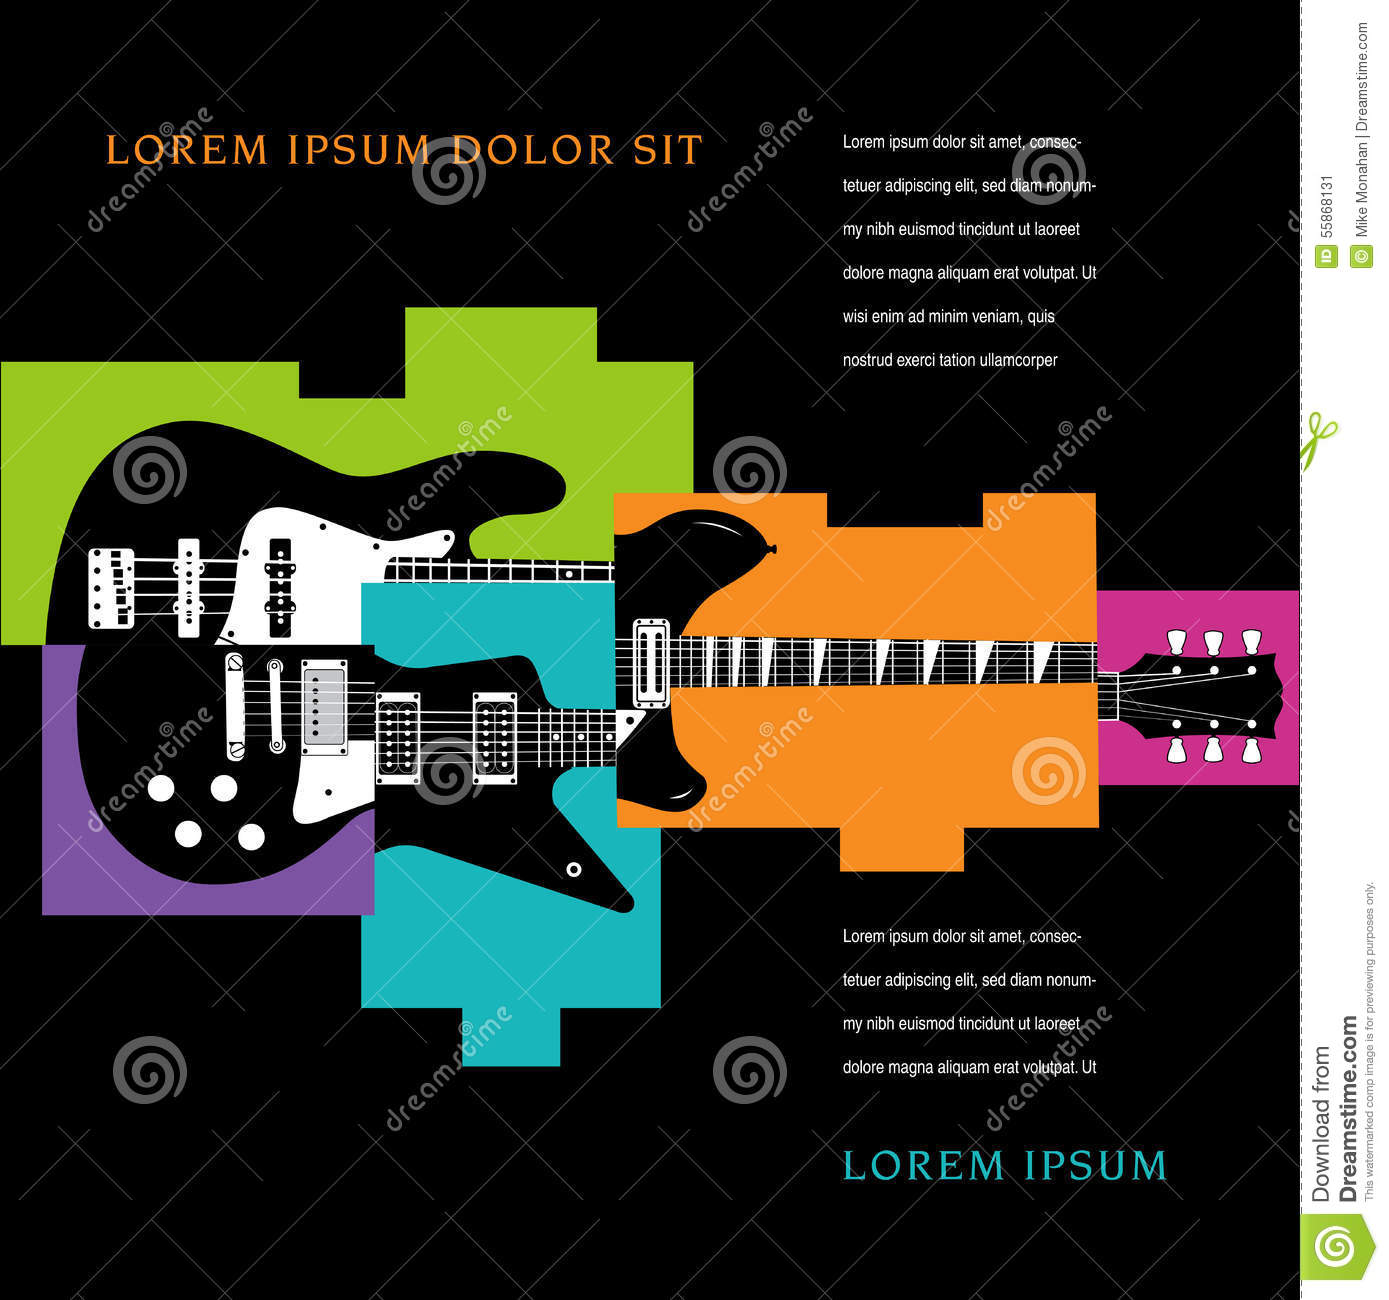 Music Concert Poster Layout Template Stock Vector - Image: 55868131